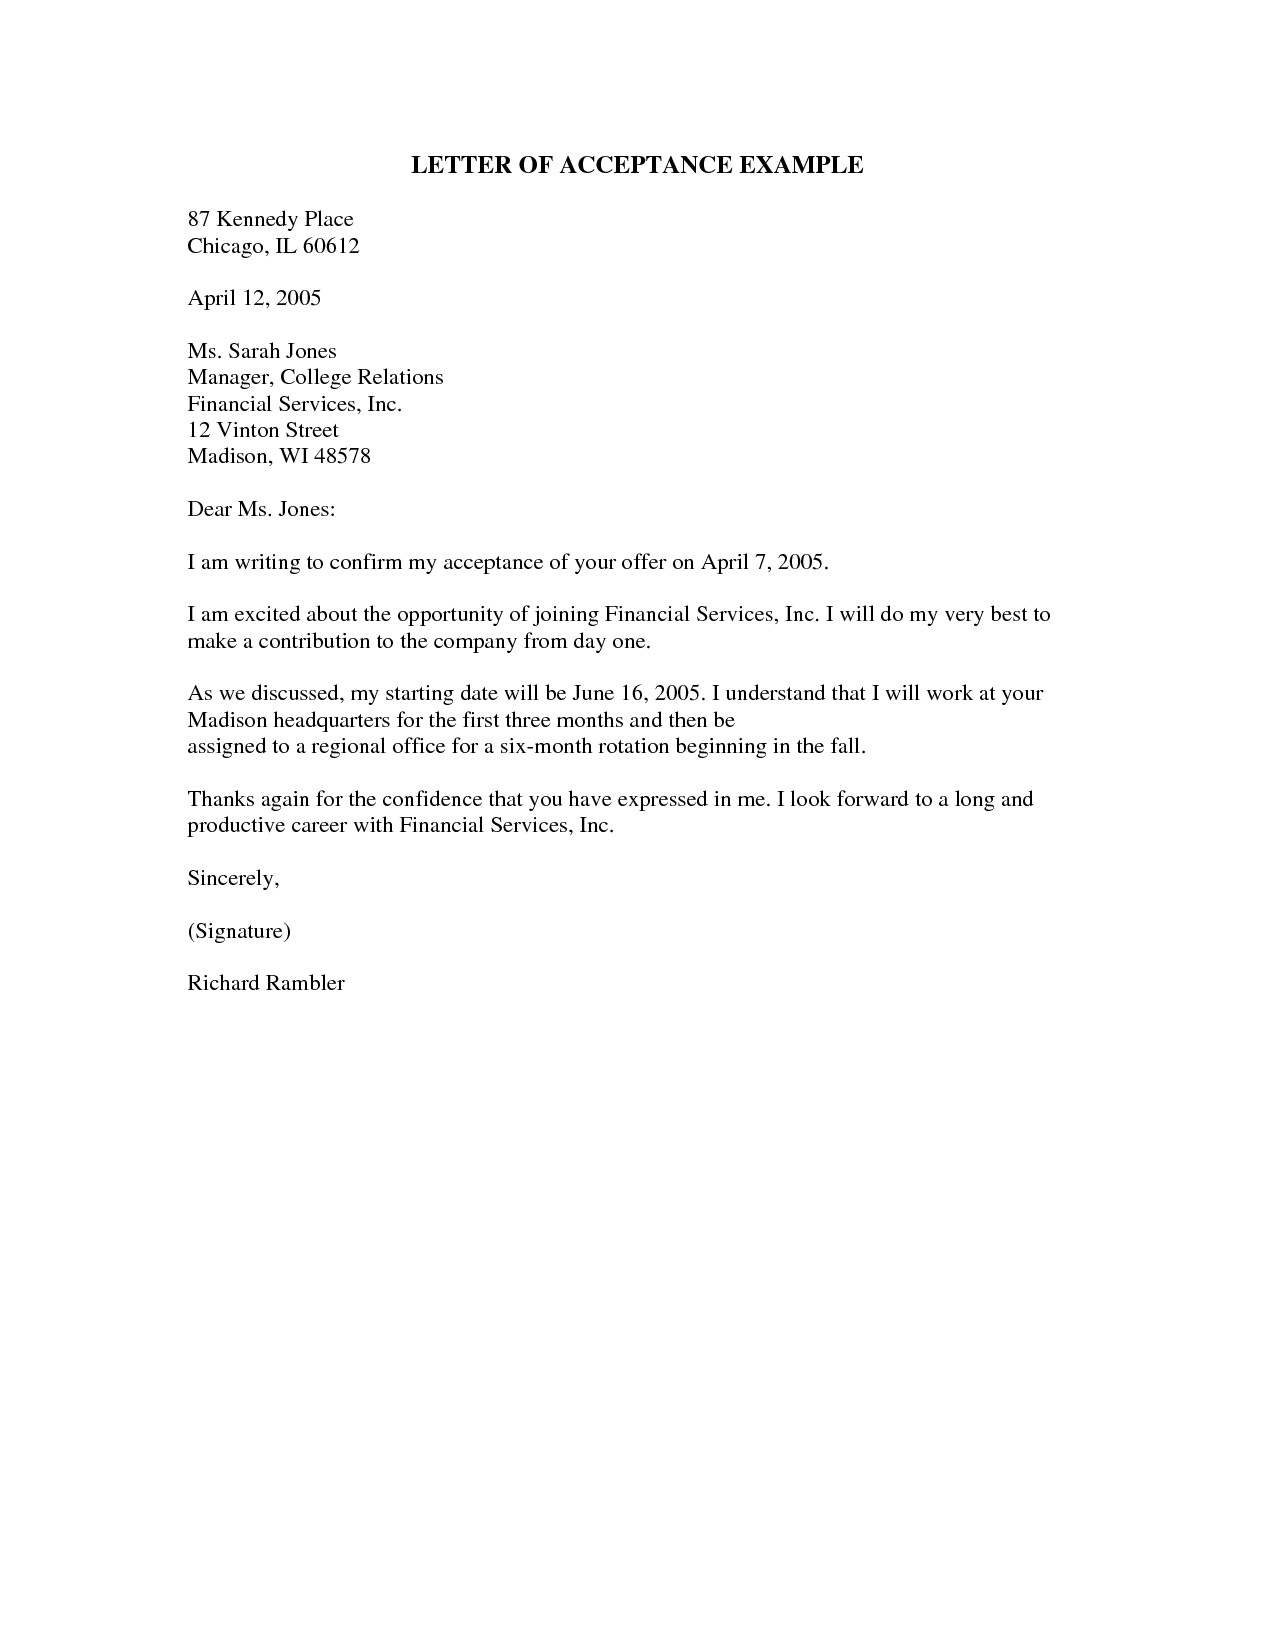 Good News Letter Template Business Good News Letter Example Letters Free Sample